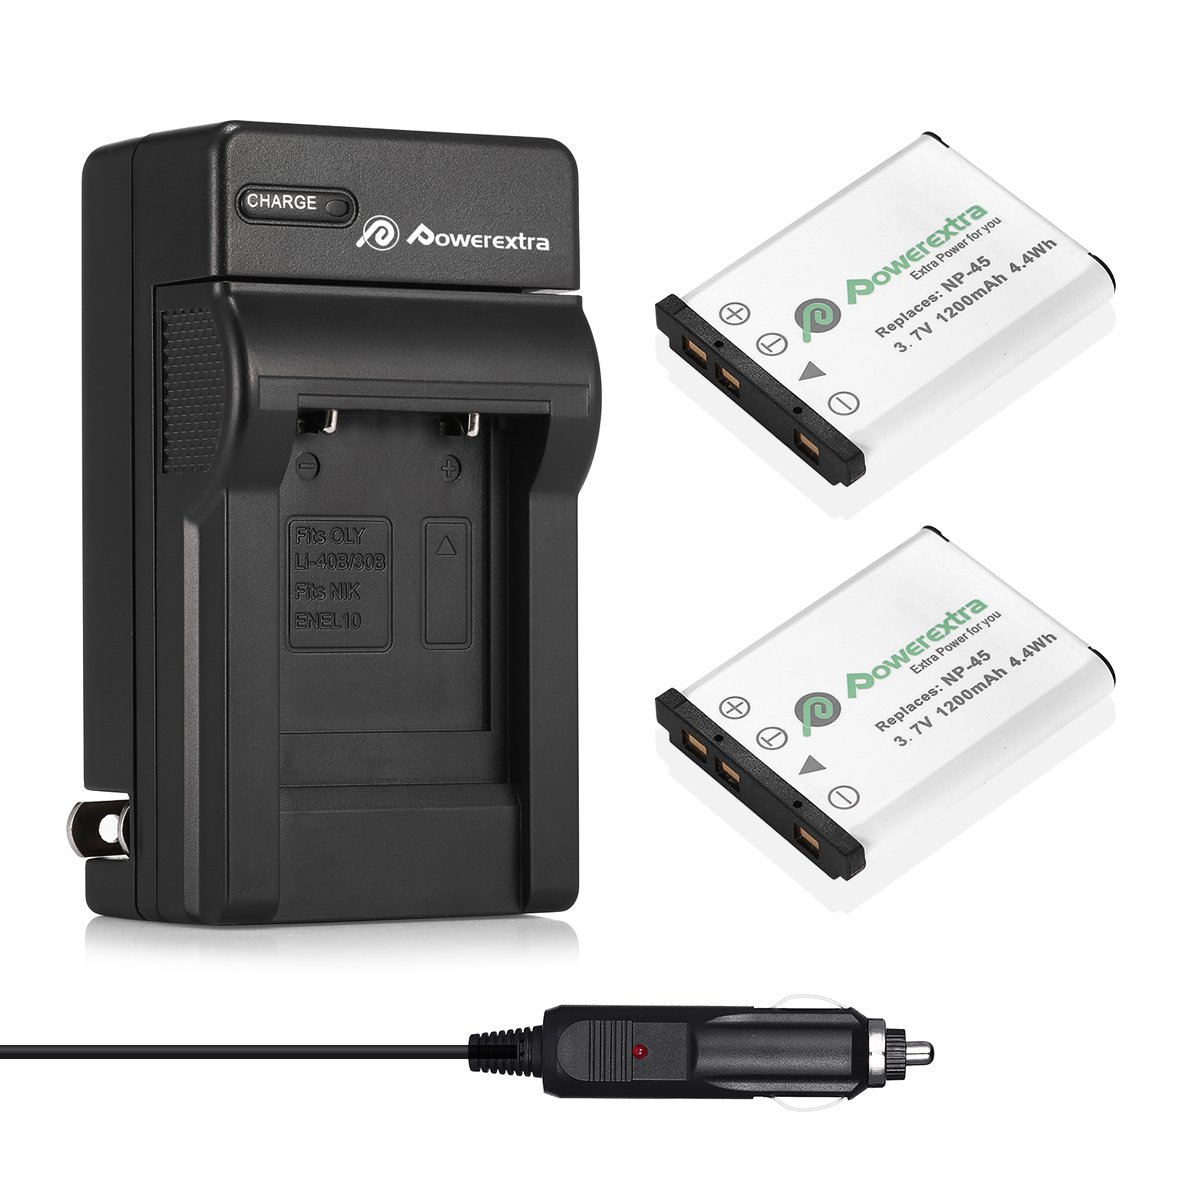 Powerextra 2x Replacement NP-45A NP-45B NP-45S Battery & Charger Compatible with Fujifilm INSTAX Mini 90 Fujifilm FinePix XP20 XP30 XP50 XP60 XP70 XP80 XP90 XP120 XP130 T360 T400 T500 T510 T550 T560